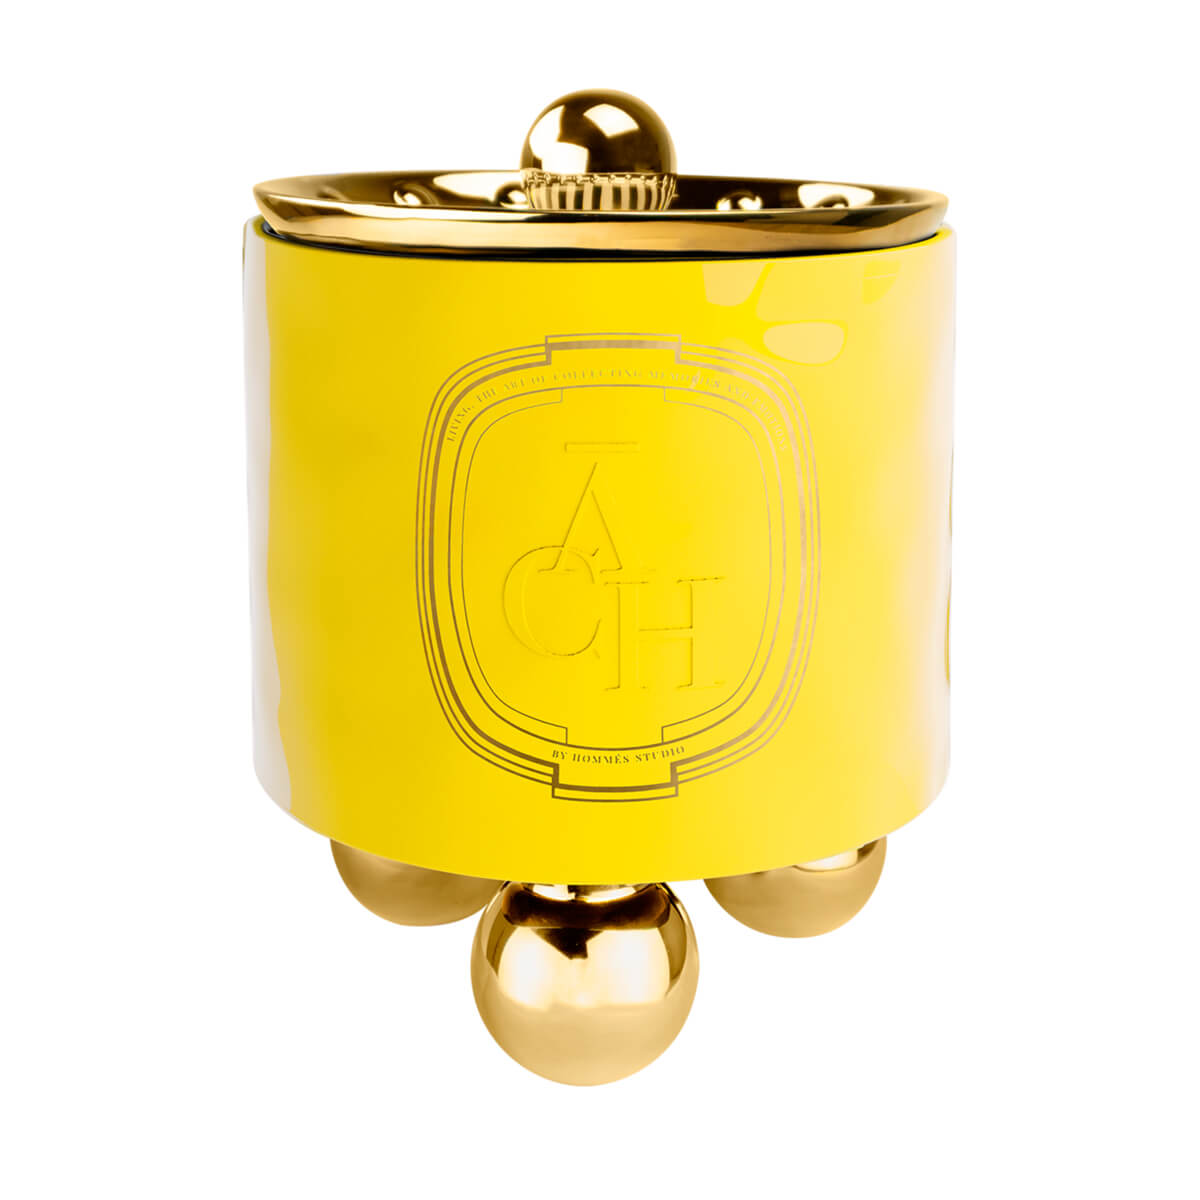 Achi Candle Yellow - Home Frangances by ACH Collection